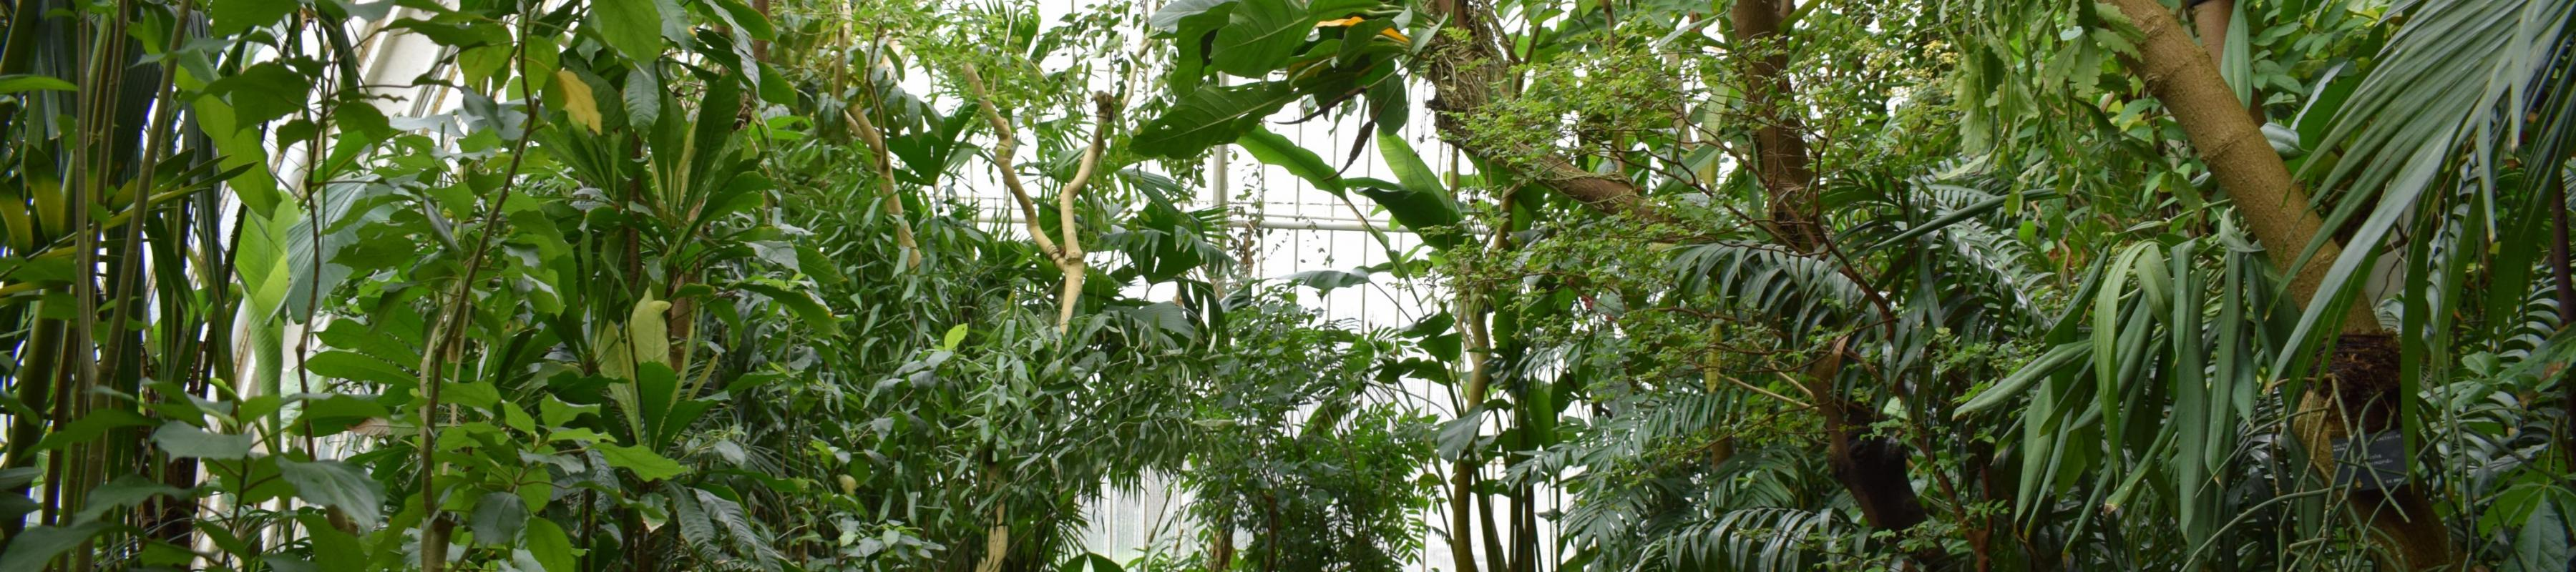 Interior of the Palm House